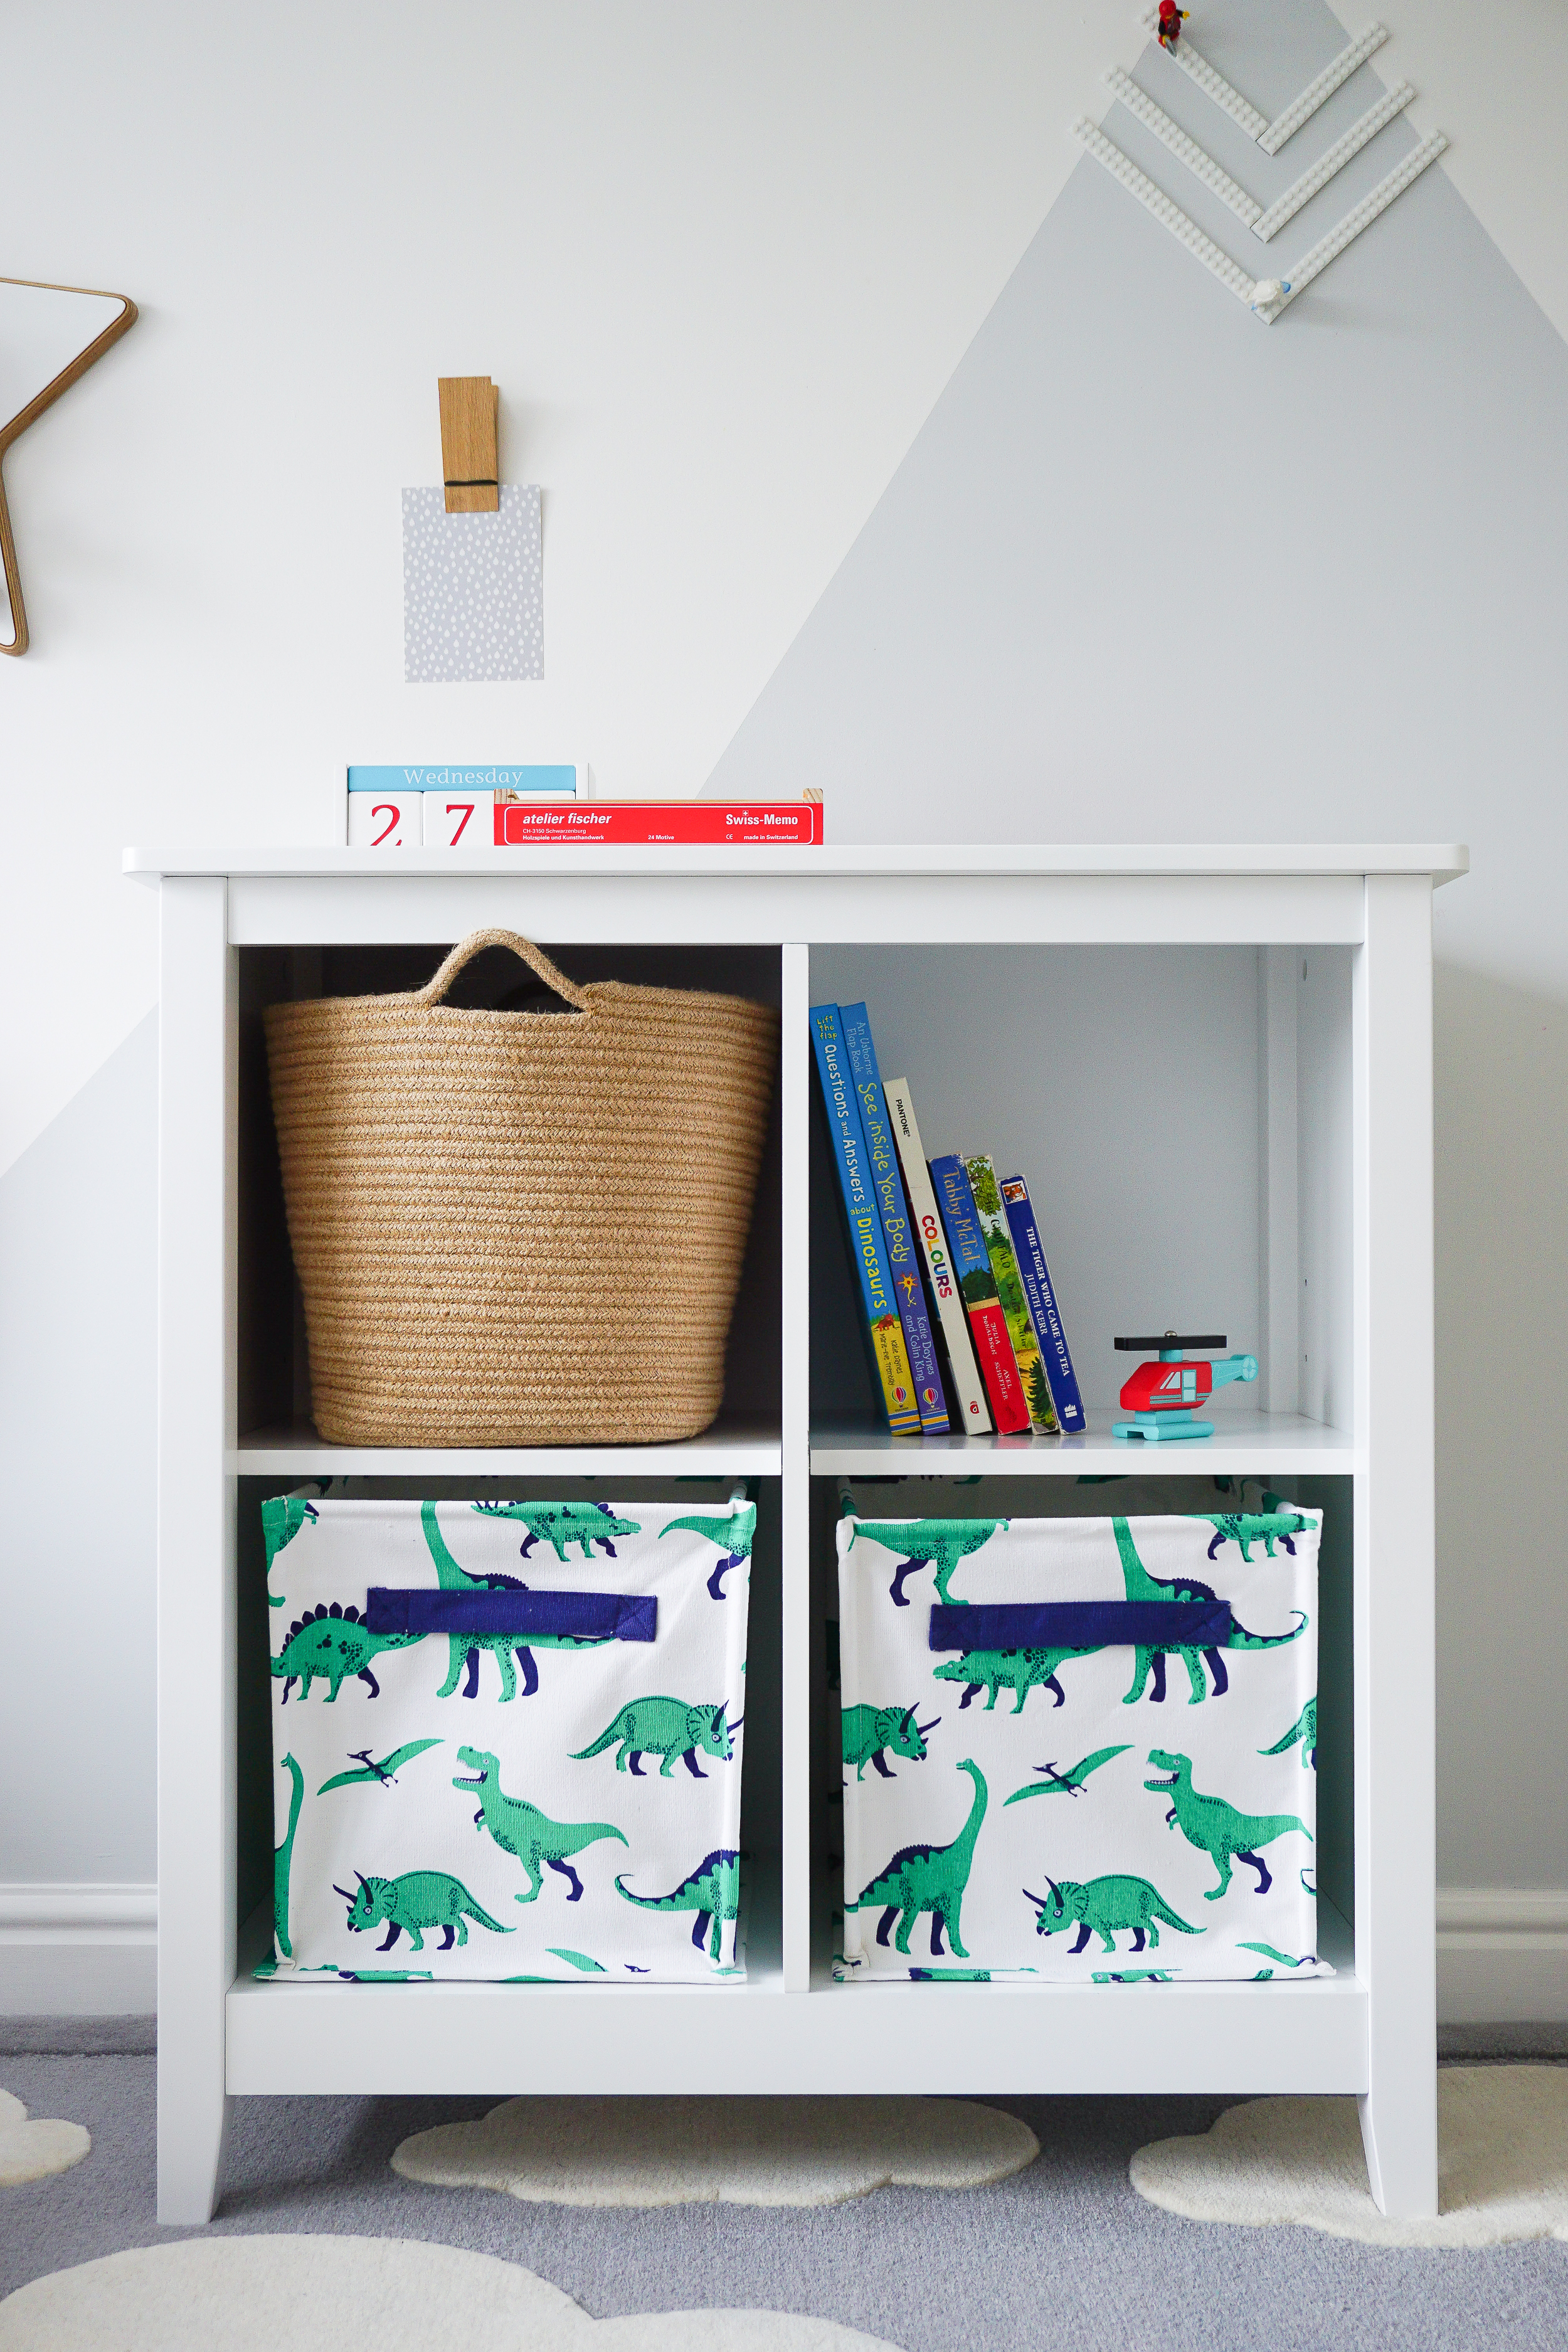 Meet Bramley: bookcase or bedside table?